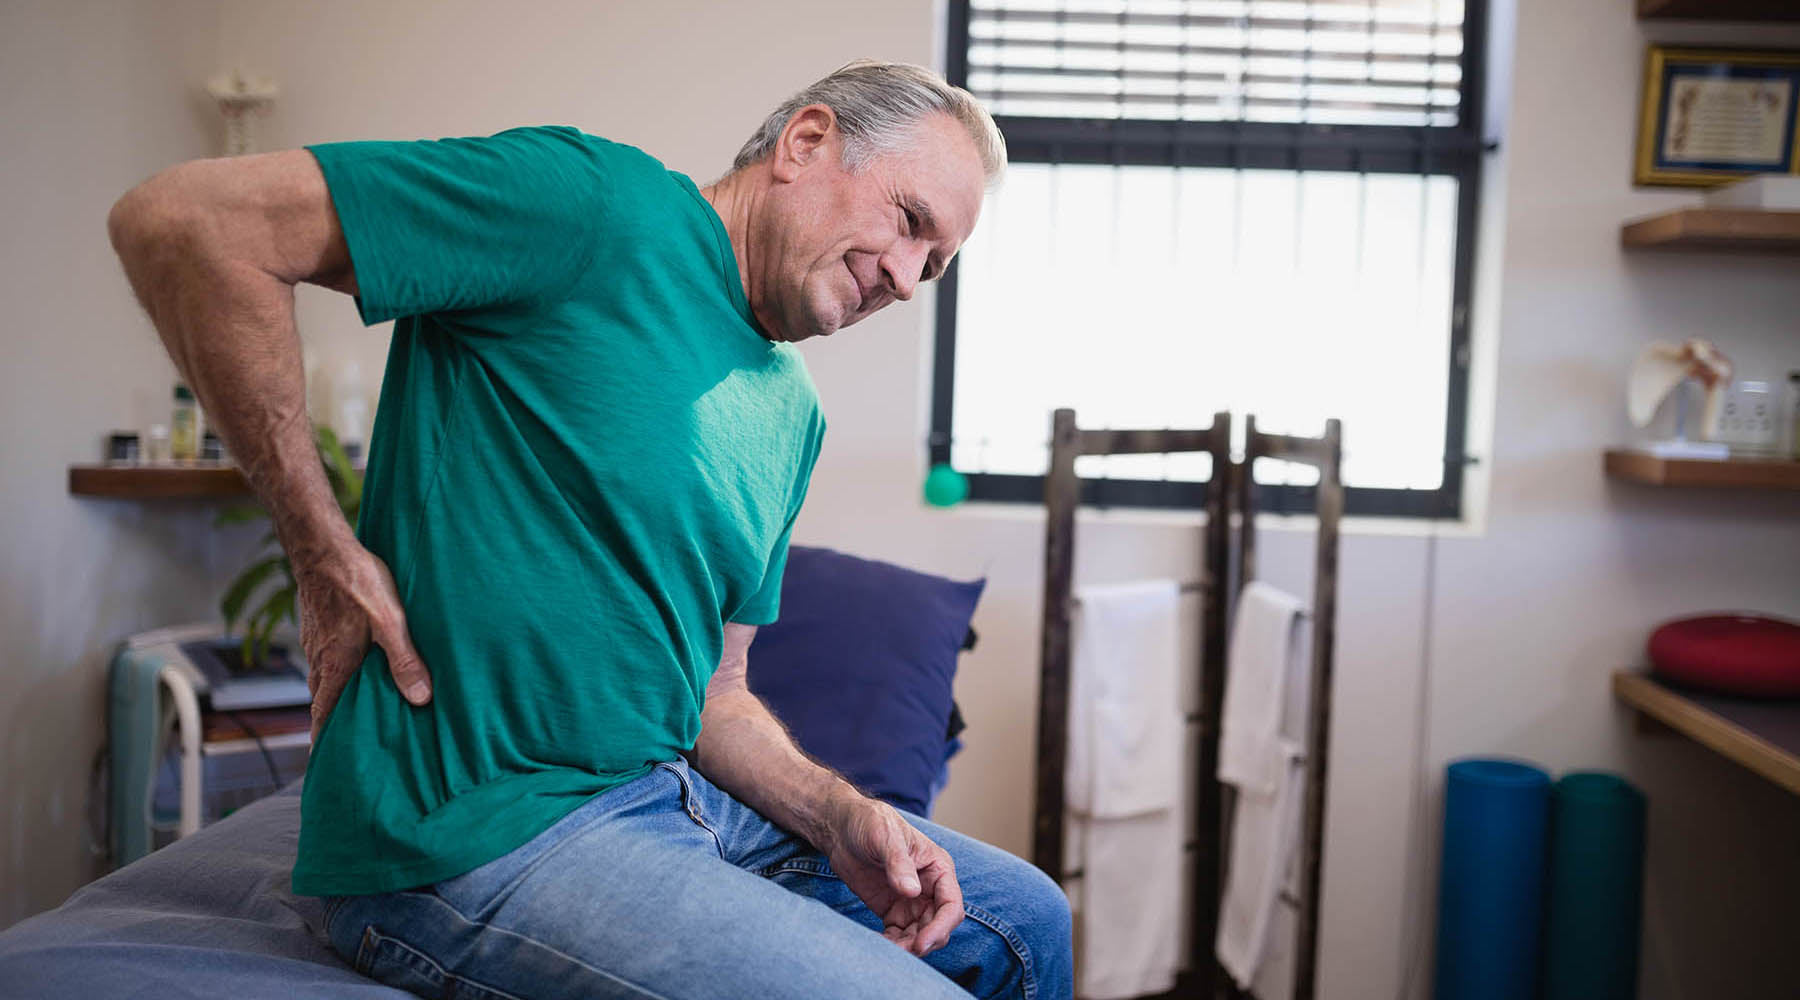 Older man in green shirt at doctor's office dealing with pain from tension myalgia